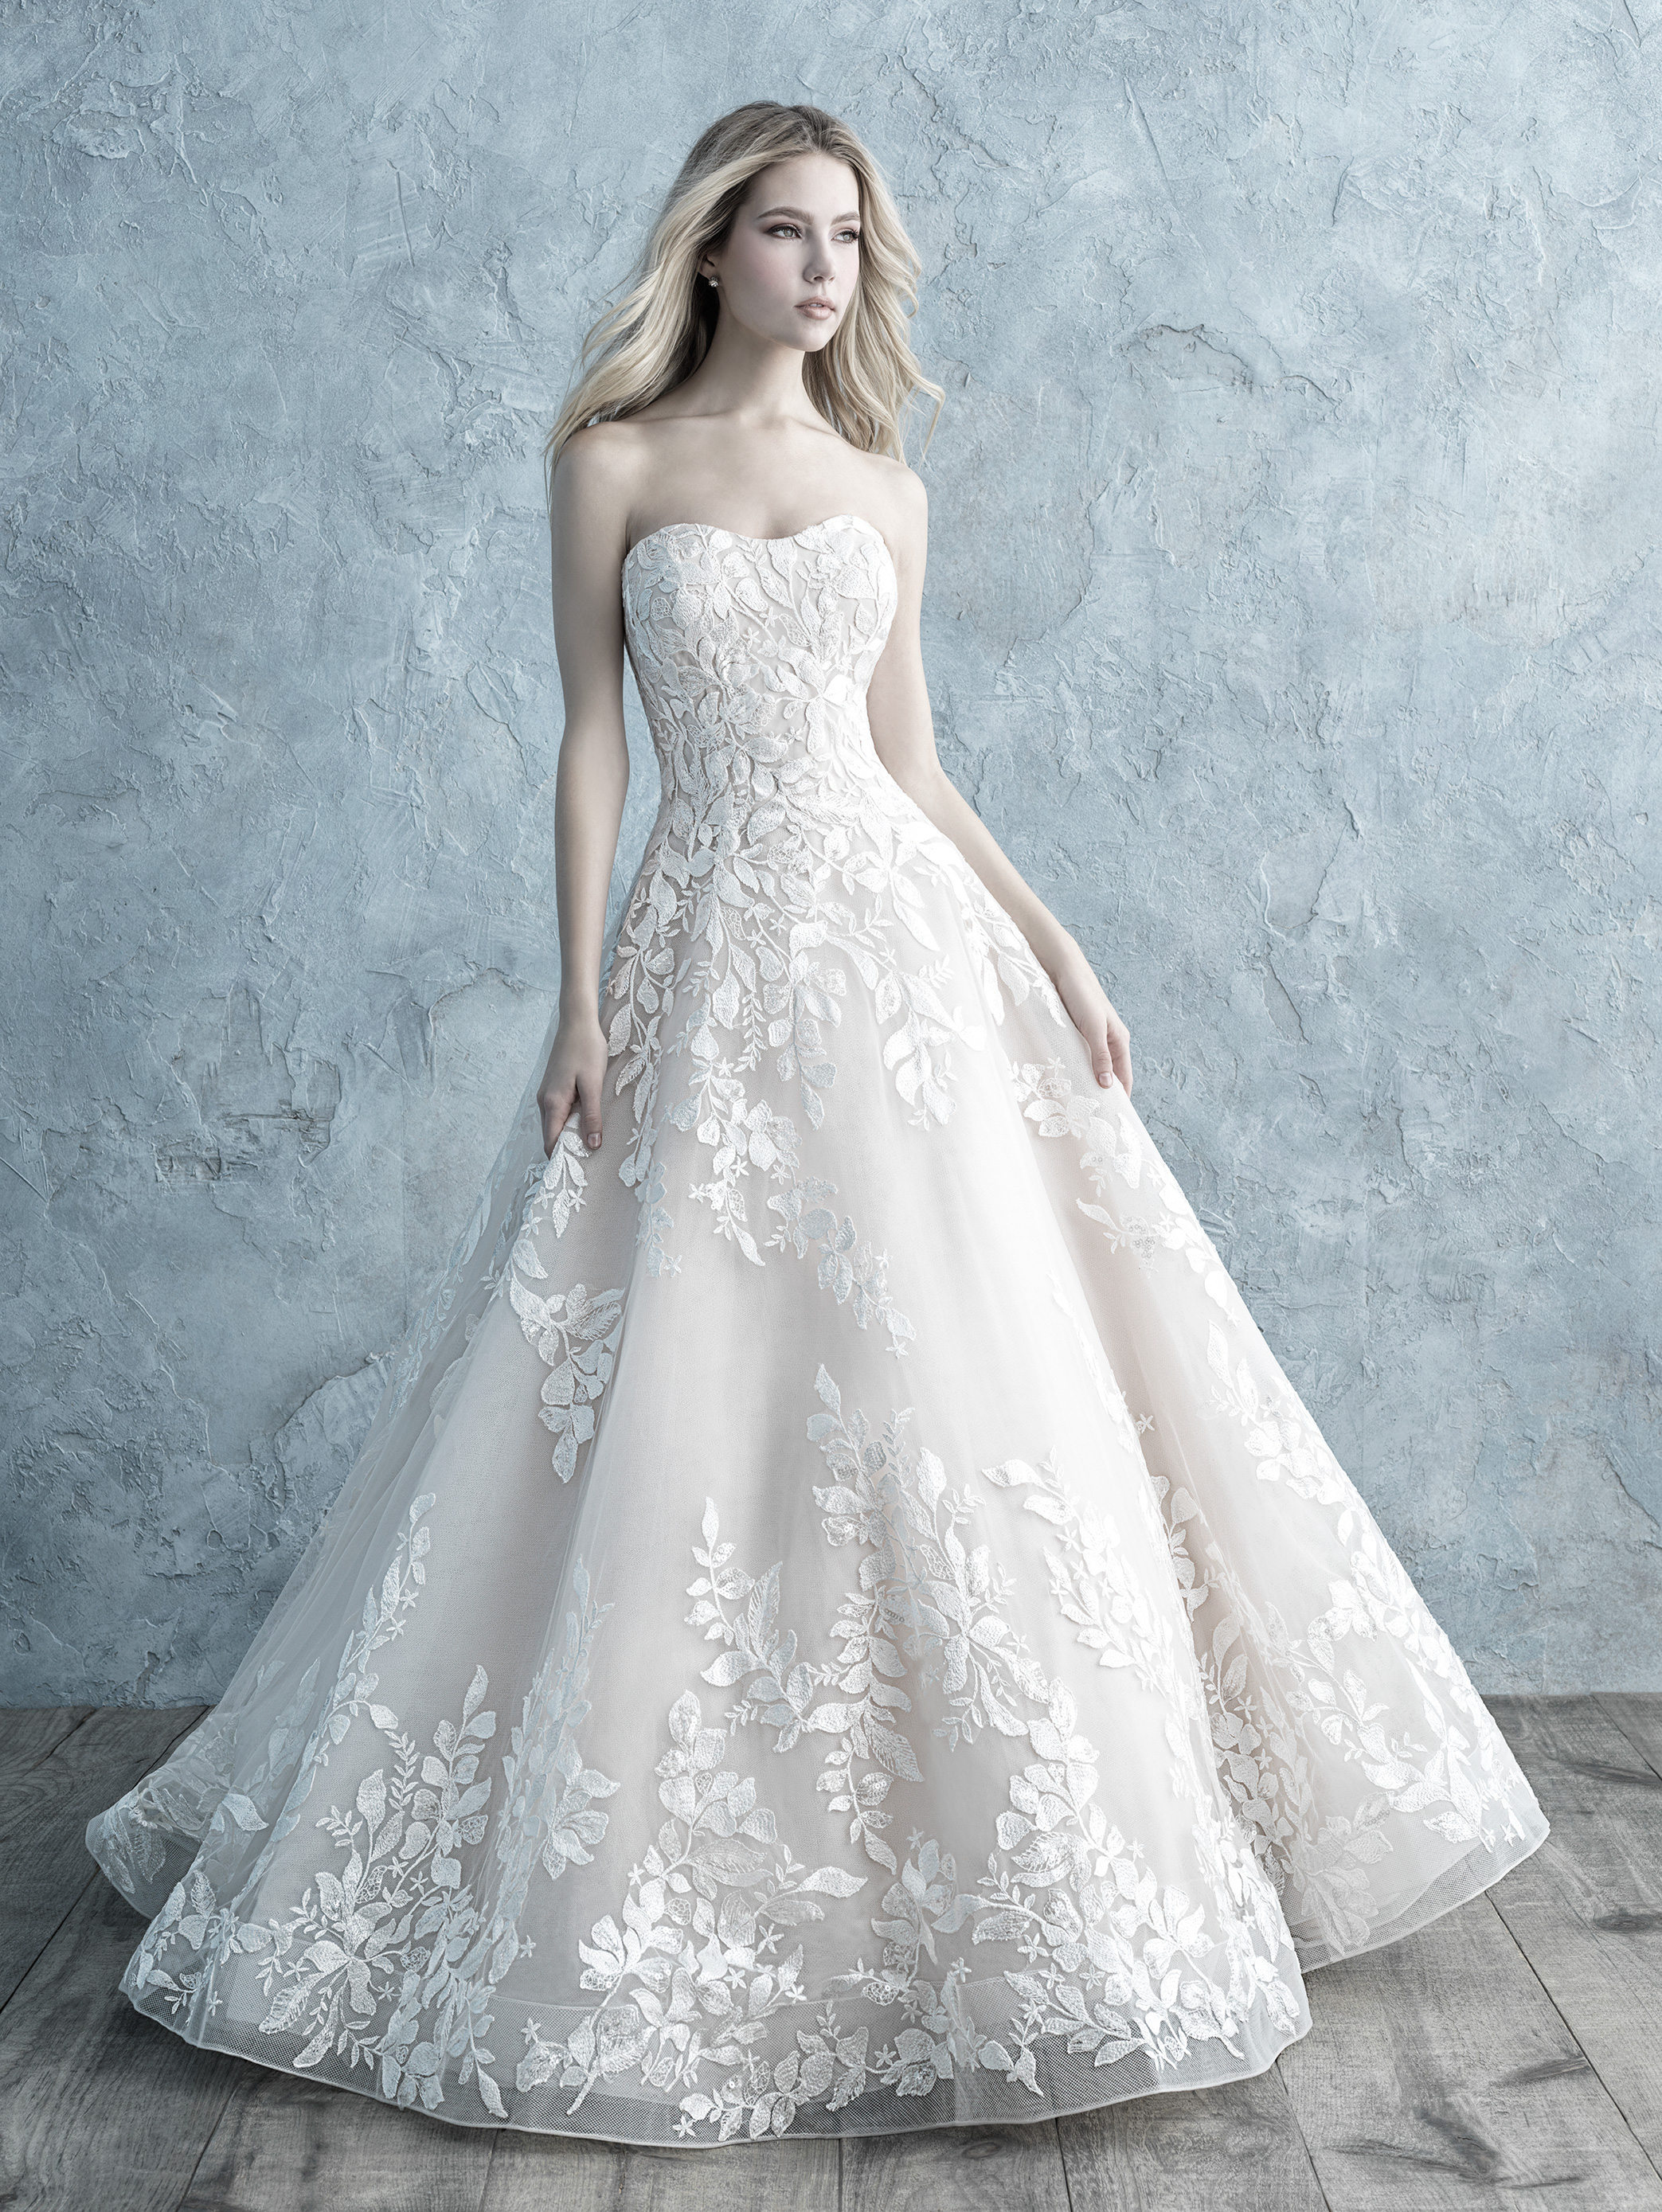 Strapless Sweetheart Floral Lace Applique Ball Gown